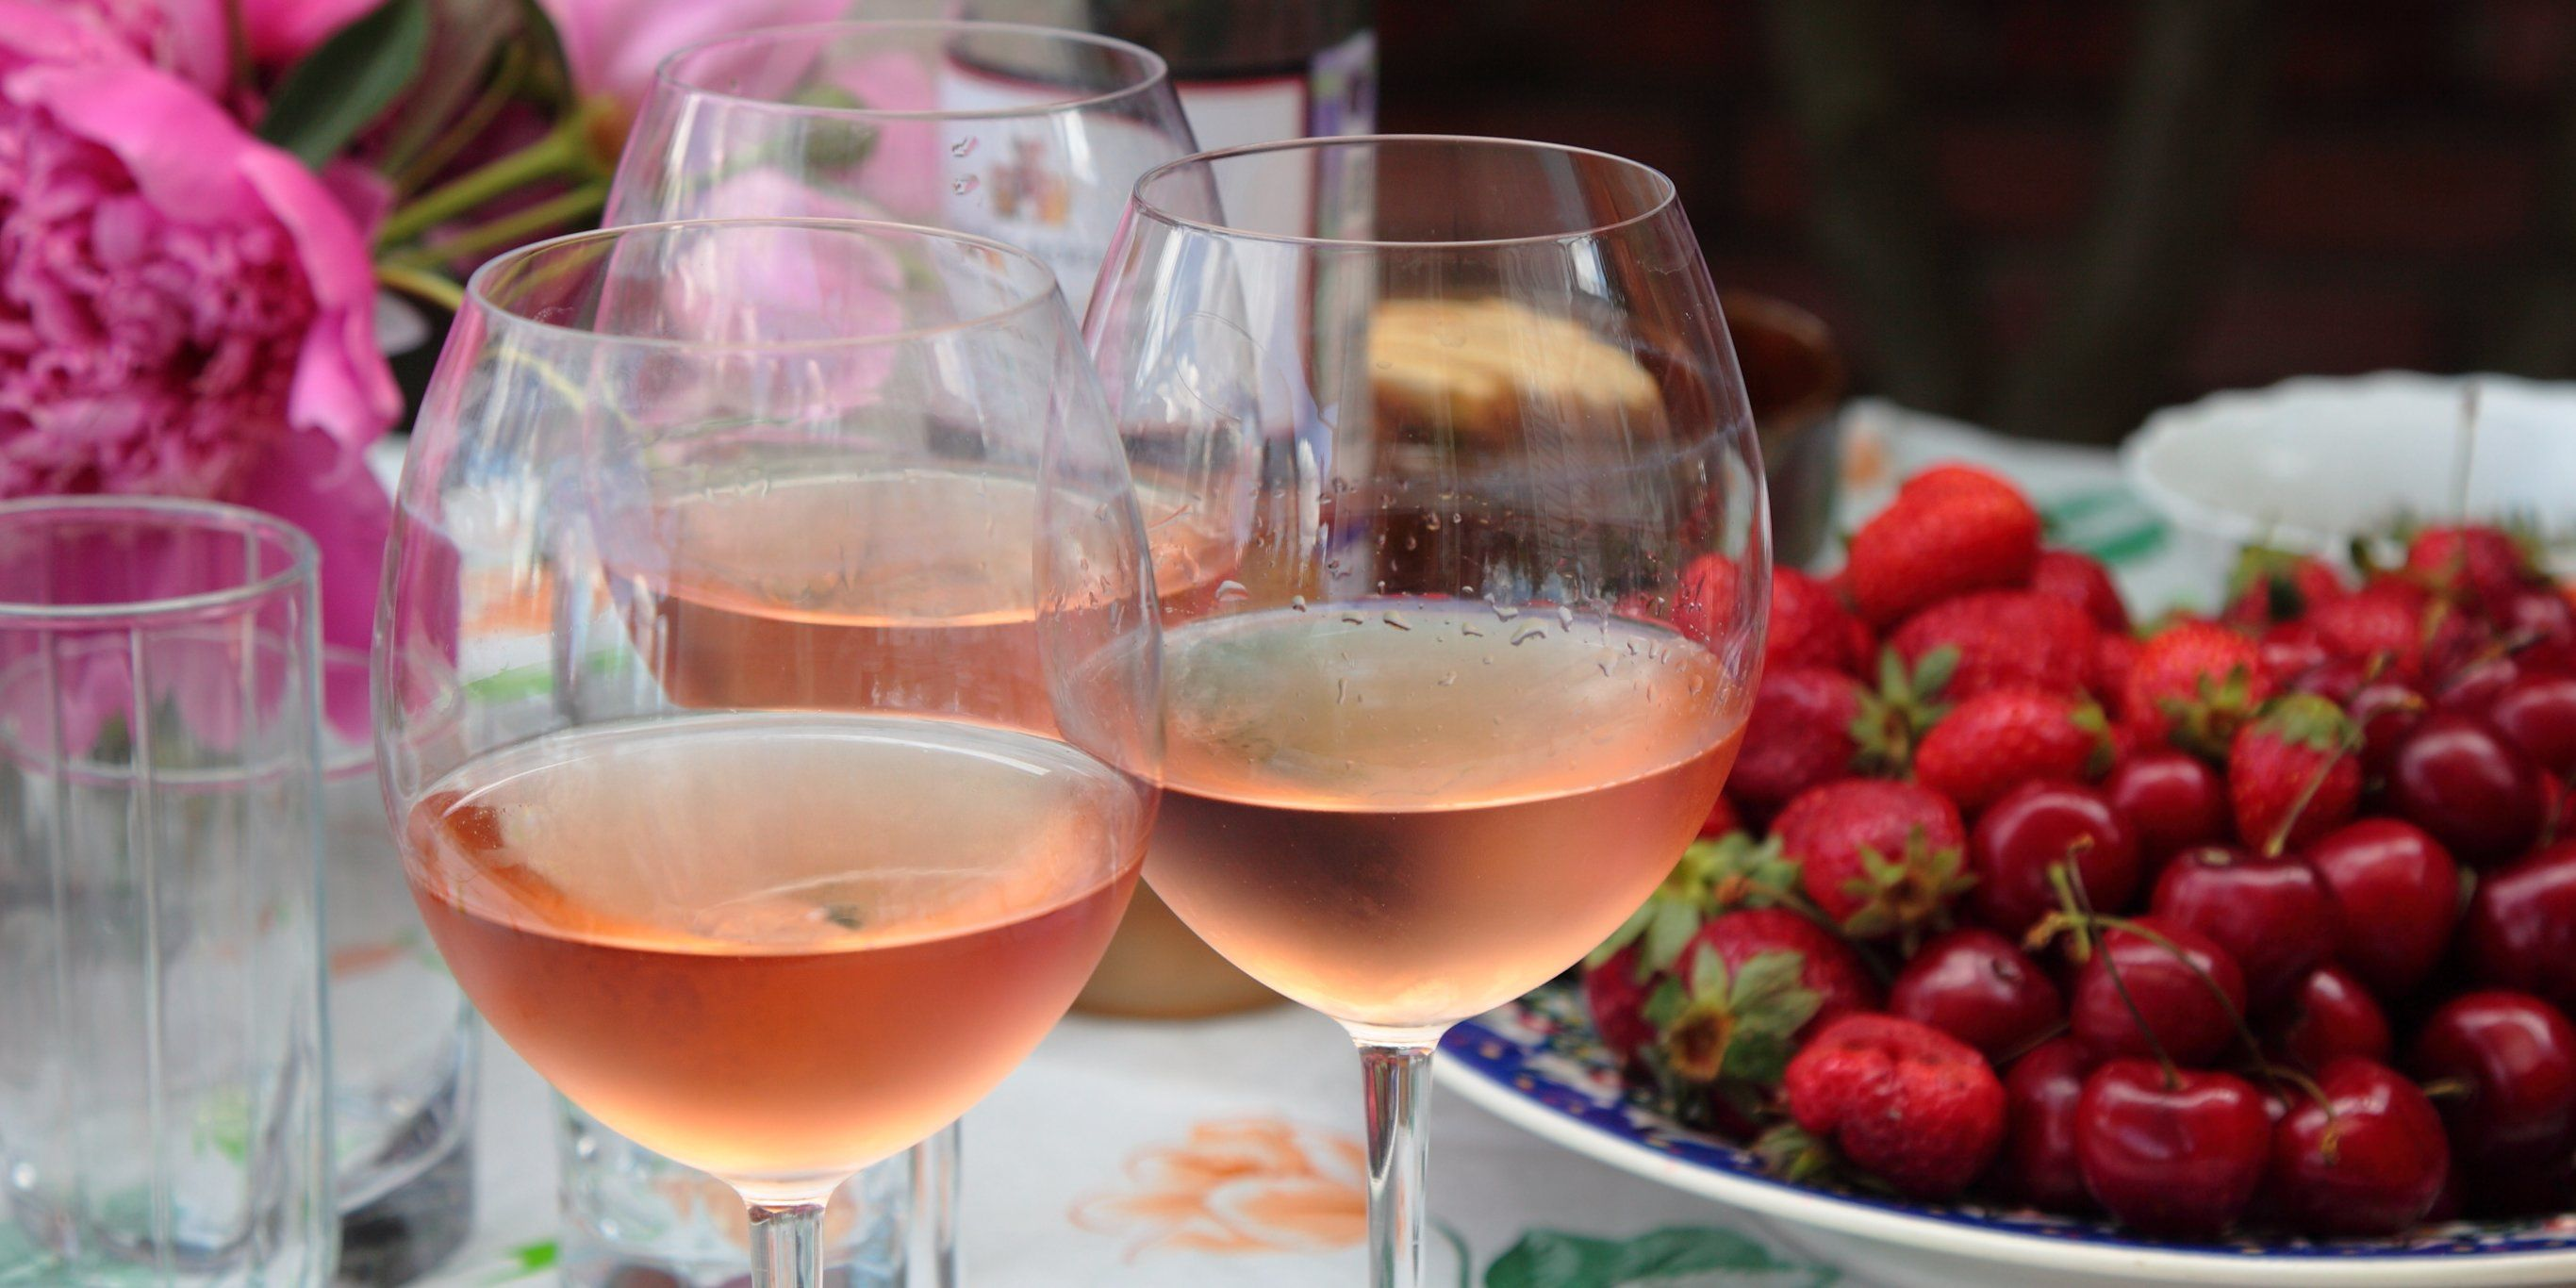 This 5 99 Bottle Of Rose From Aldi Has Been Ranked Among The Best Wines In The World Wine Expert Best Rose Wine Wine Recipes